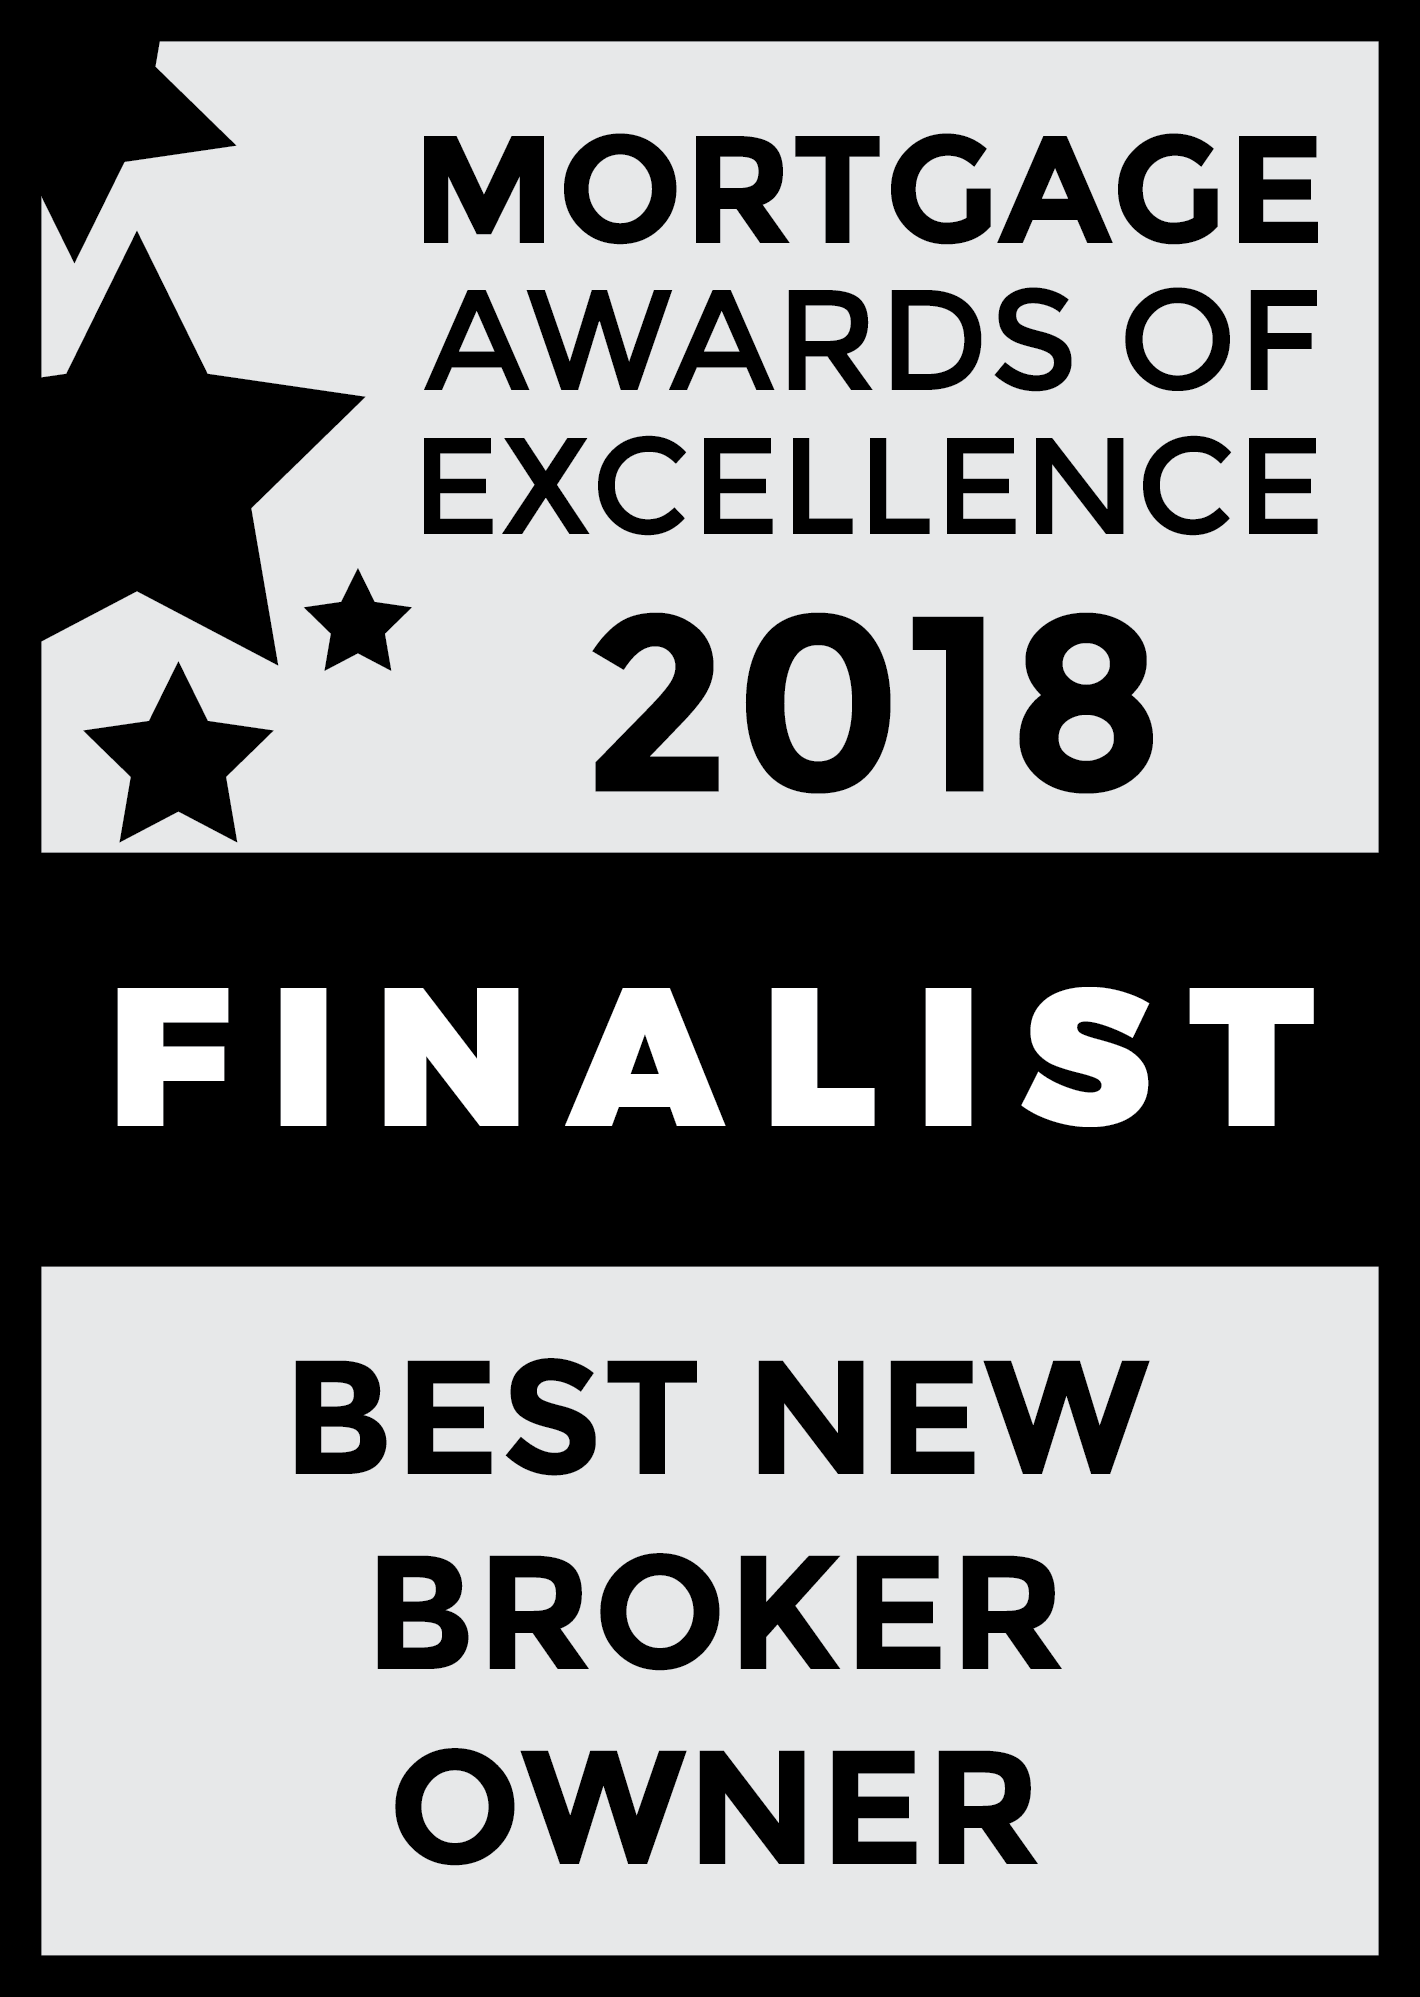 2018 Mortgage Awards of Excellence Best New Broker Owner Finalist